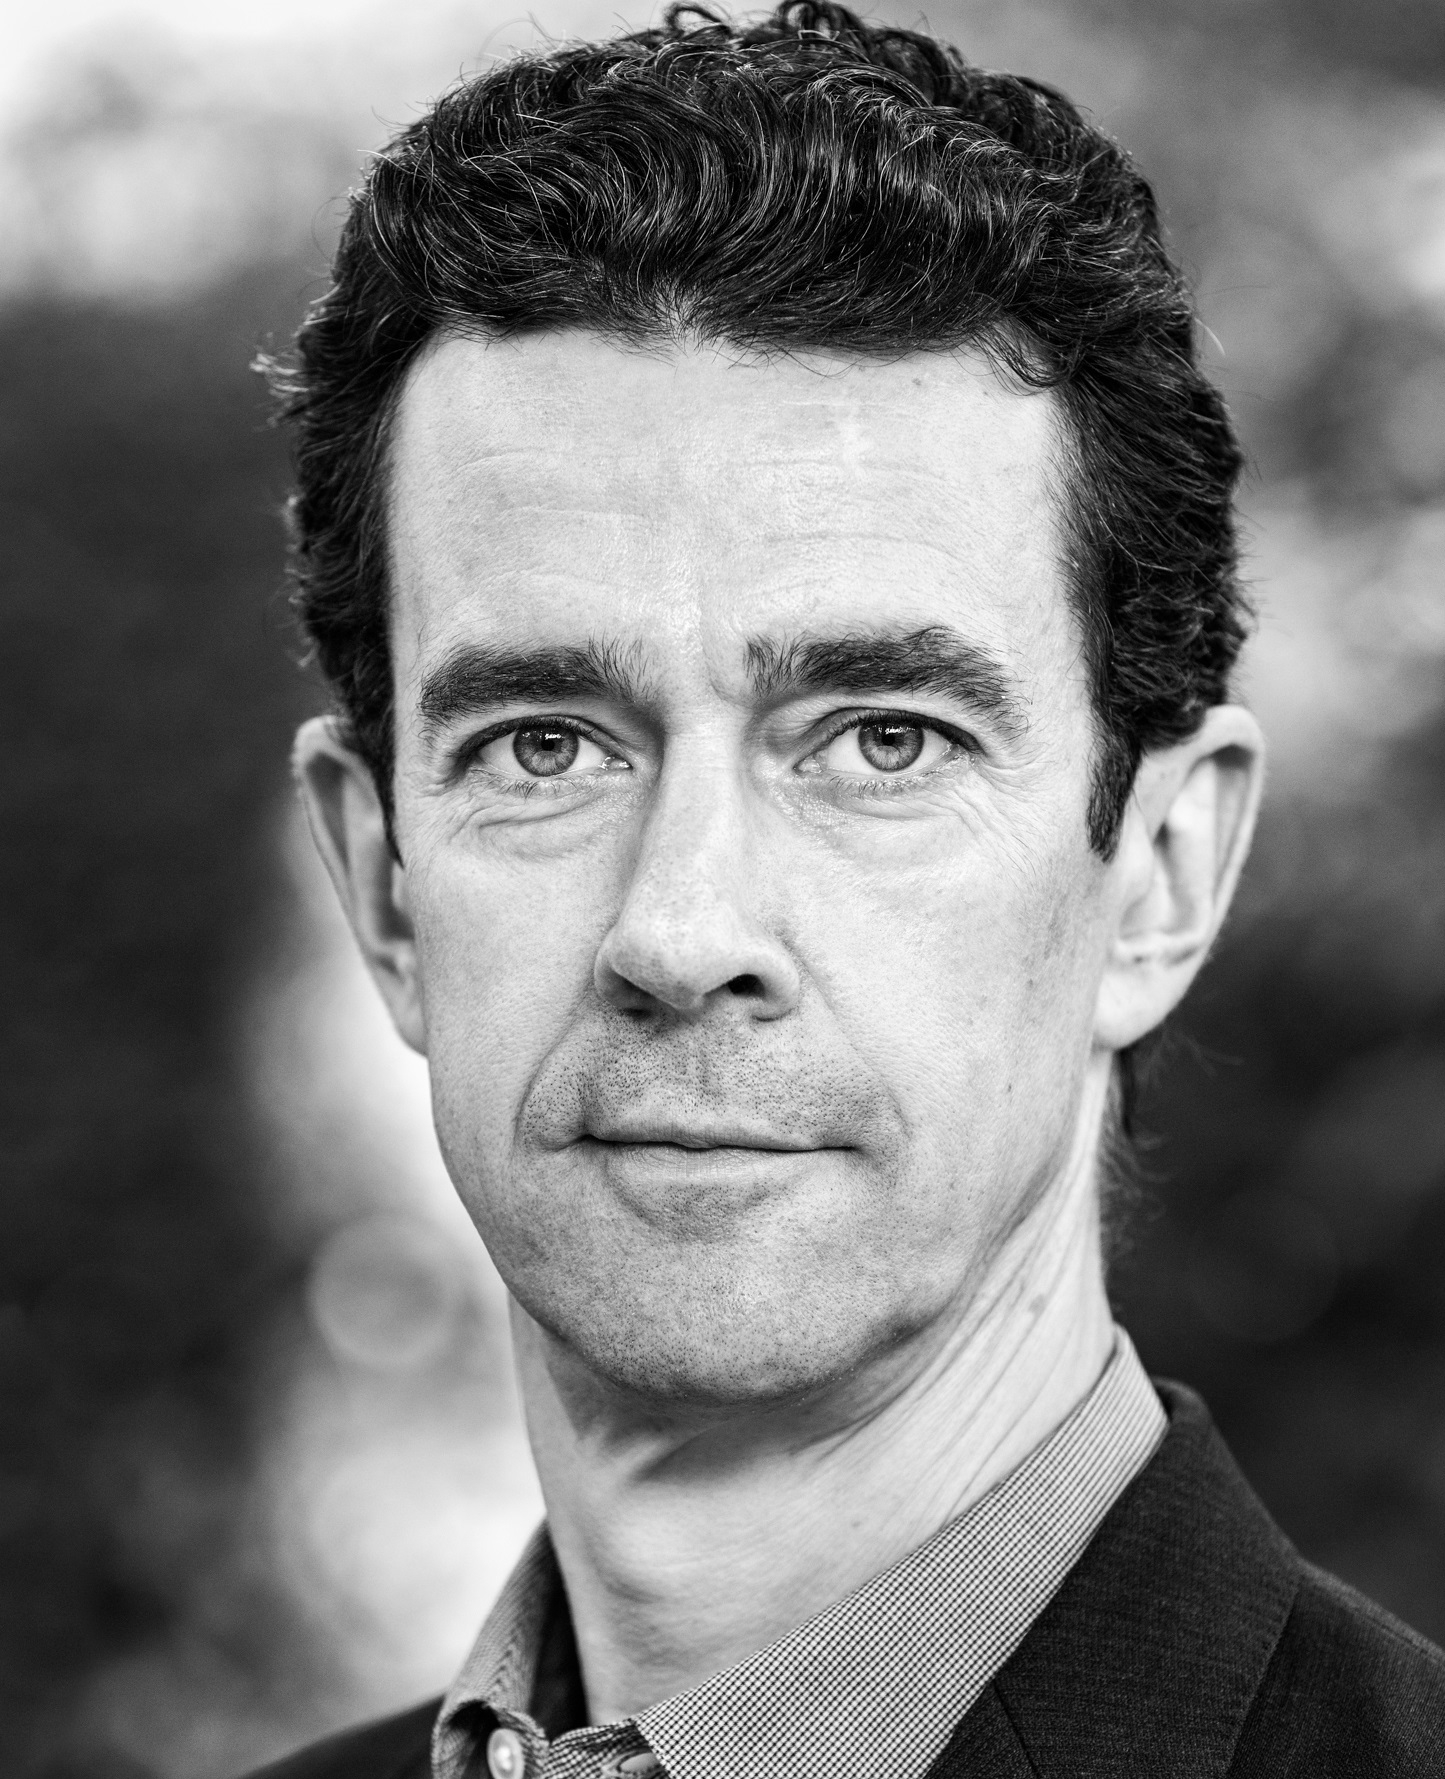 Alex Harland - Max FeltzerAlex began acting at the Maddermarket Theatre in Norwich. He then trained at Cambridge University and Drama Studio,London.On stage, he has appeared in Blood Brothers, Never Mind the Botox and Enduring Song. He can also be seen in the upcoming movie, Sky Sharks.